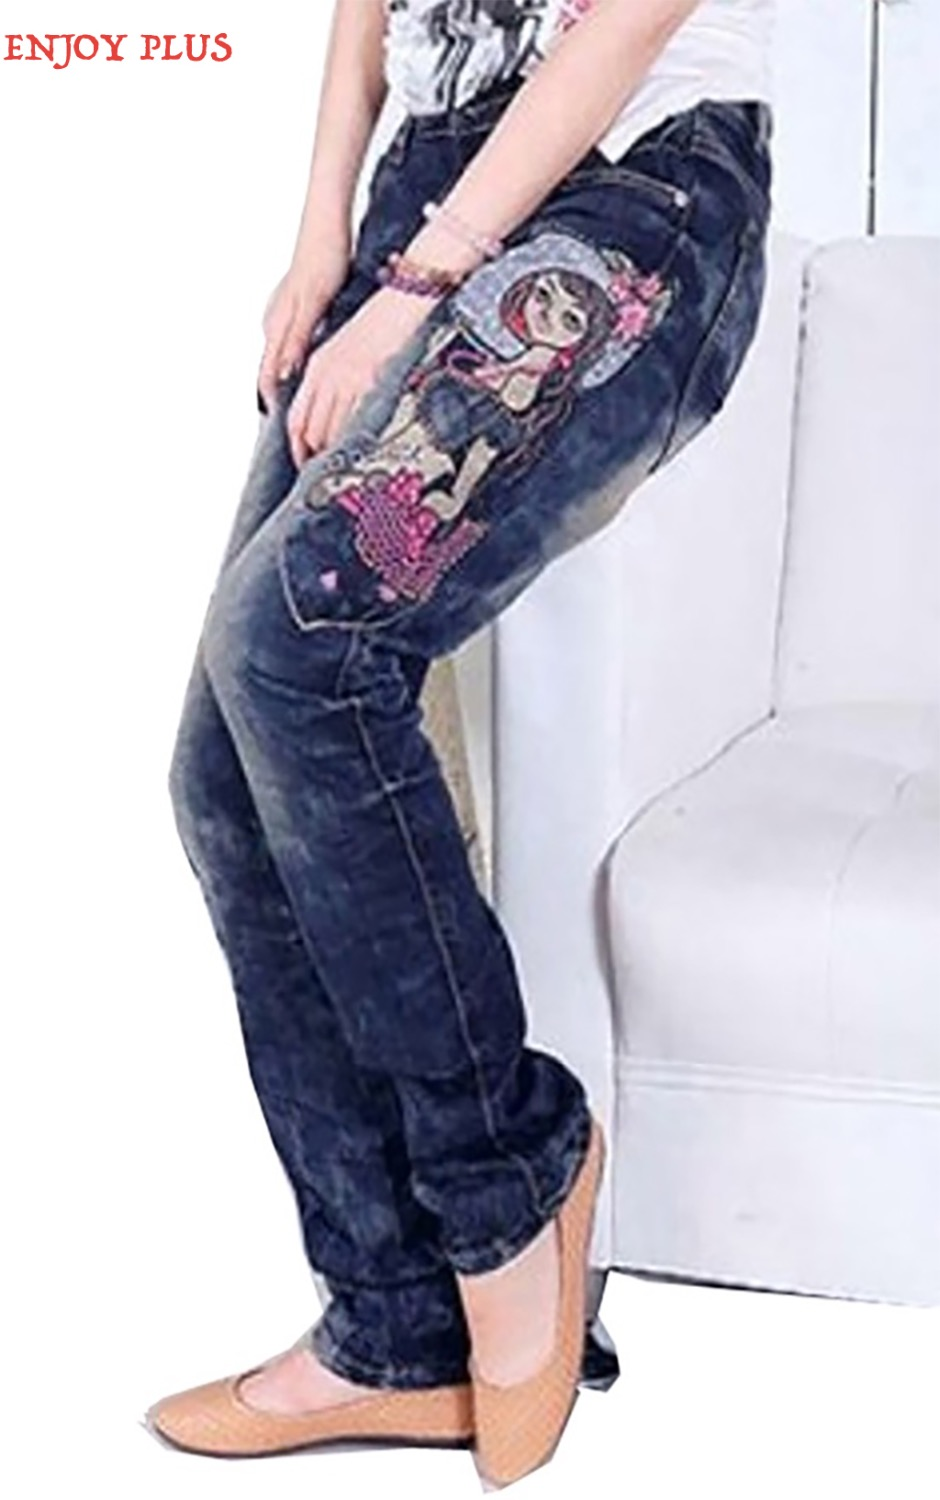 High Quality 8%OFF hip 104-124cm casual cotton long jeans women pants 2017 big size denim embroidery straight trousers blue lady jeans men high quality casual denim cotton biker jean regular pants big size long trousers slim fit brand clothing f8